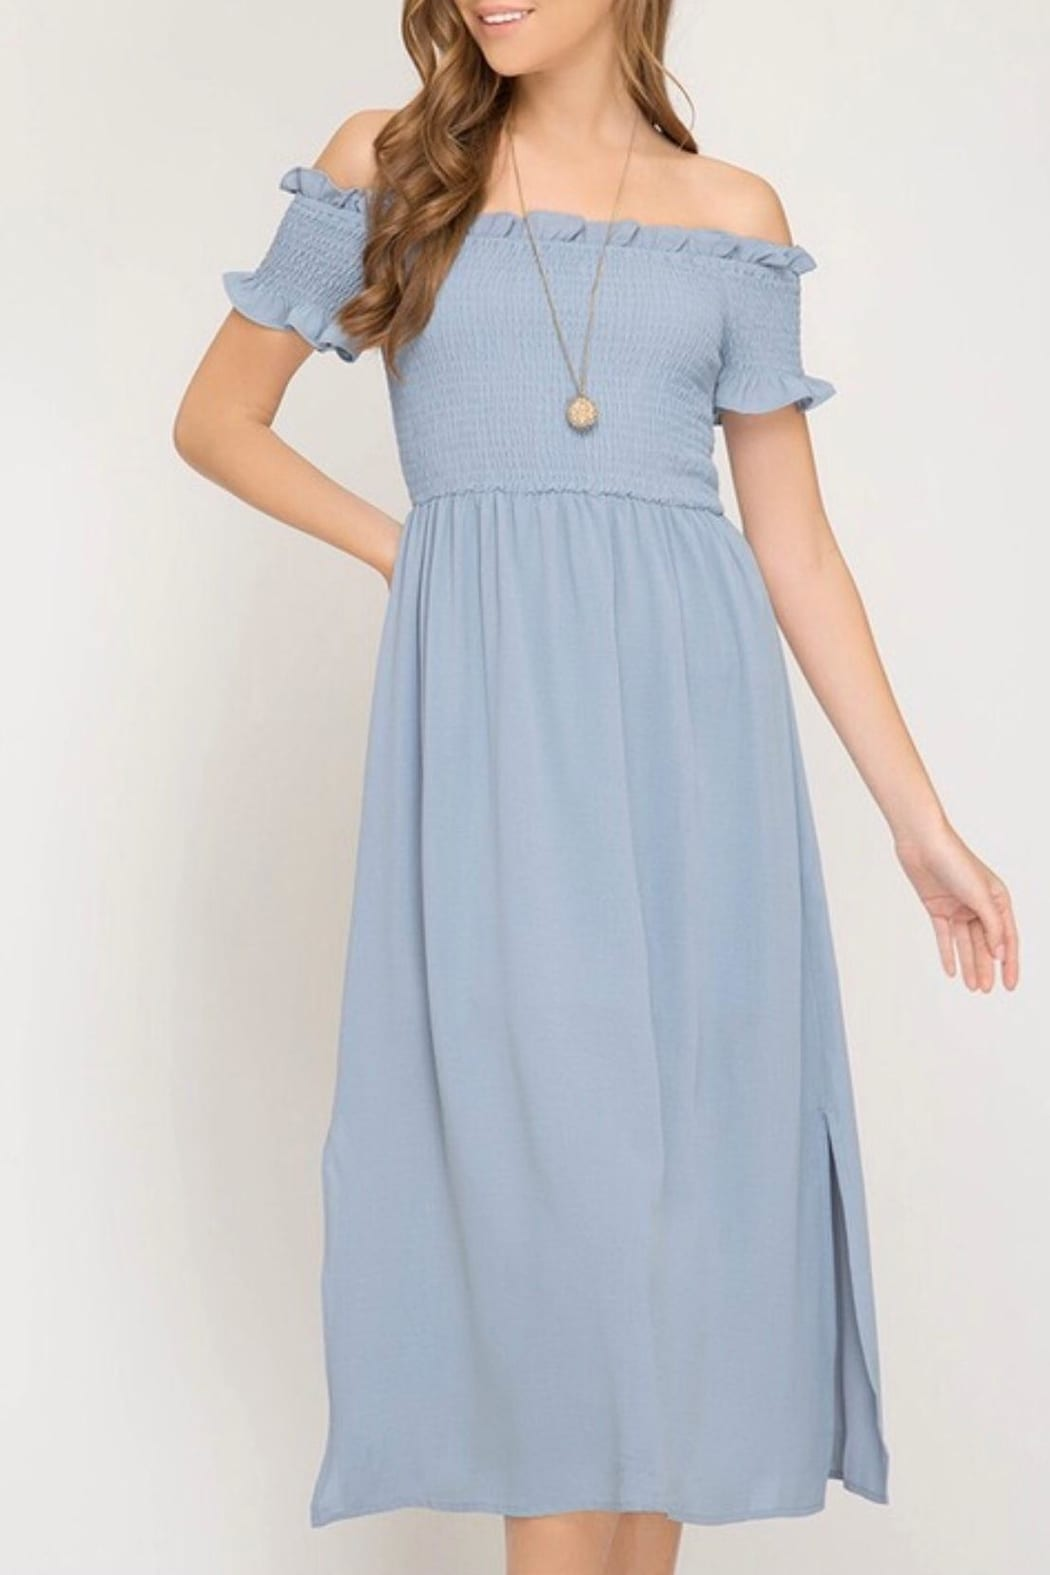 APRICOT LANE Woven Midi Blue Dress